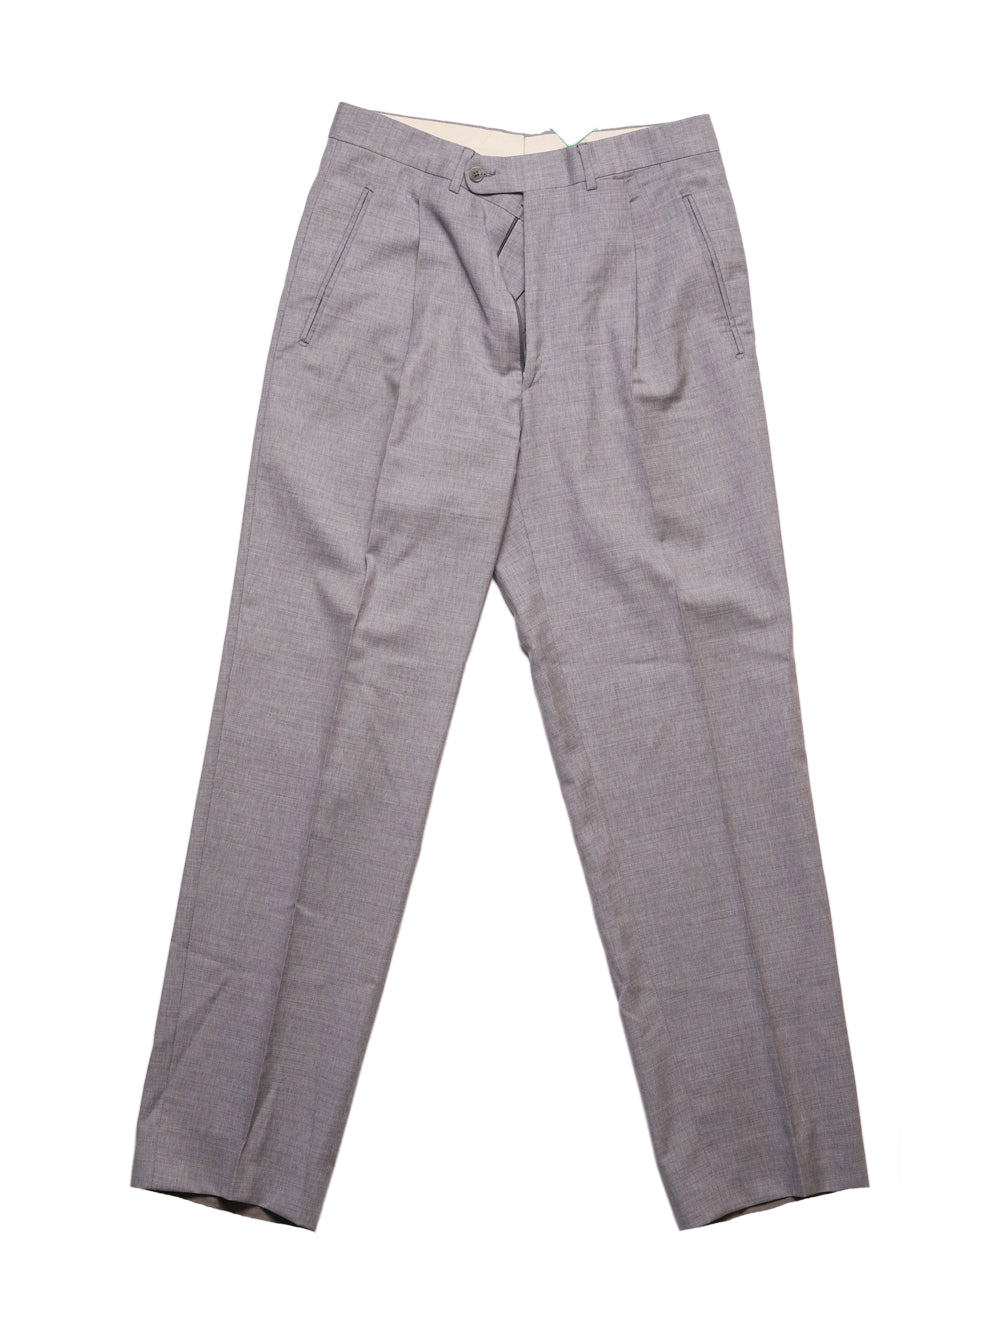 Front photo of Preloved Corneliani Grey Man's trousers - size 40/L